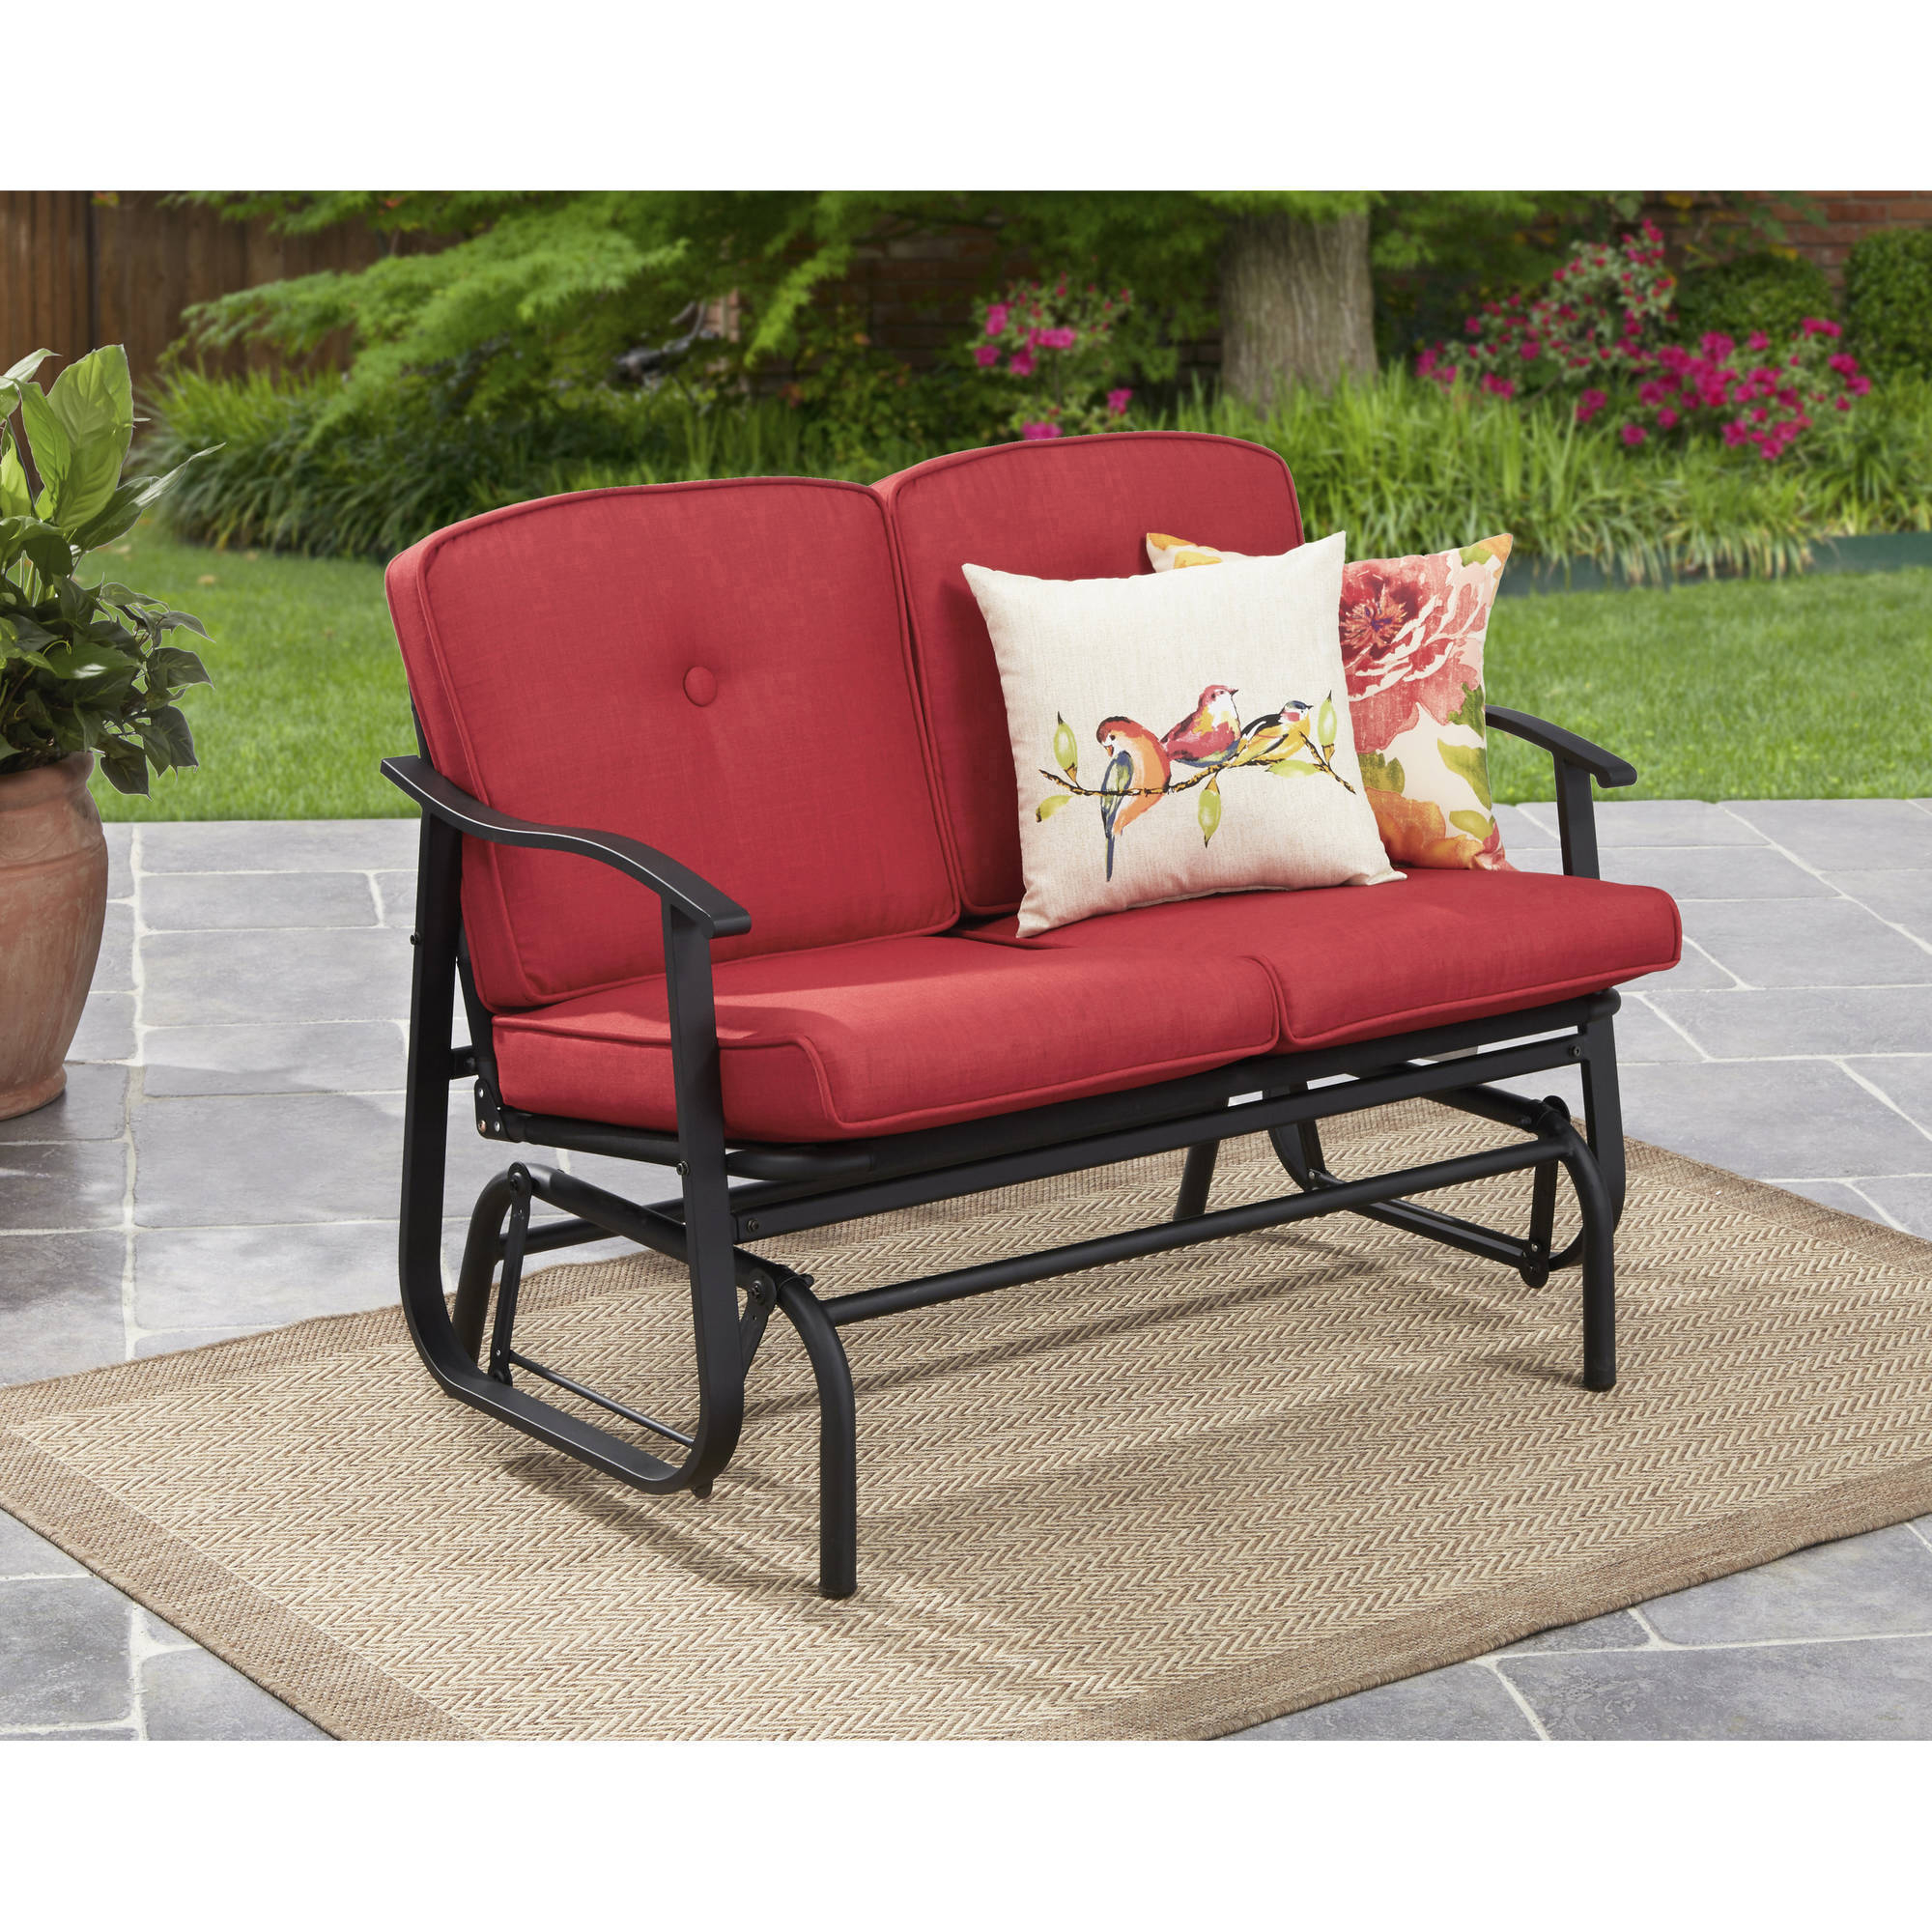 Best And Newest Cushioned Glider Benches With Cushions With Mainstays Belden Park Outdoor Loveseat Glider With Cushion – Walmart (Gallery 15 of 30)